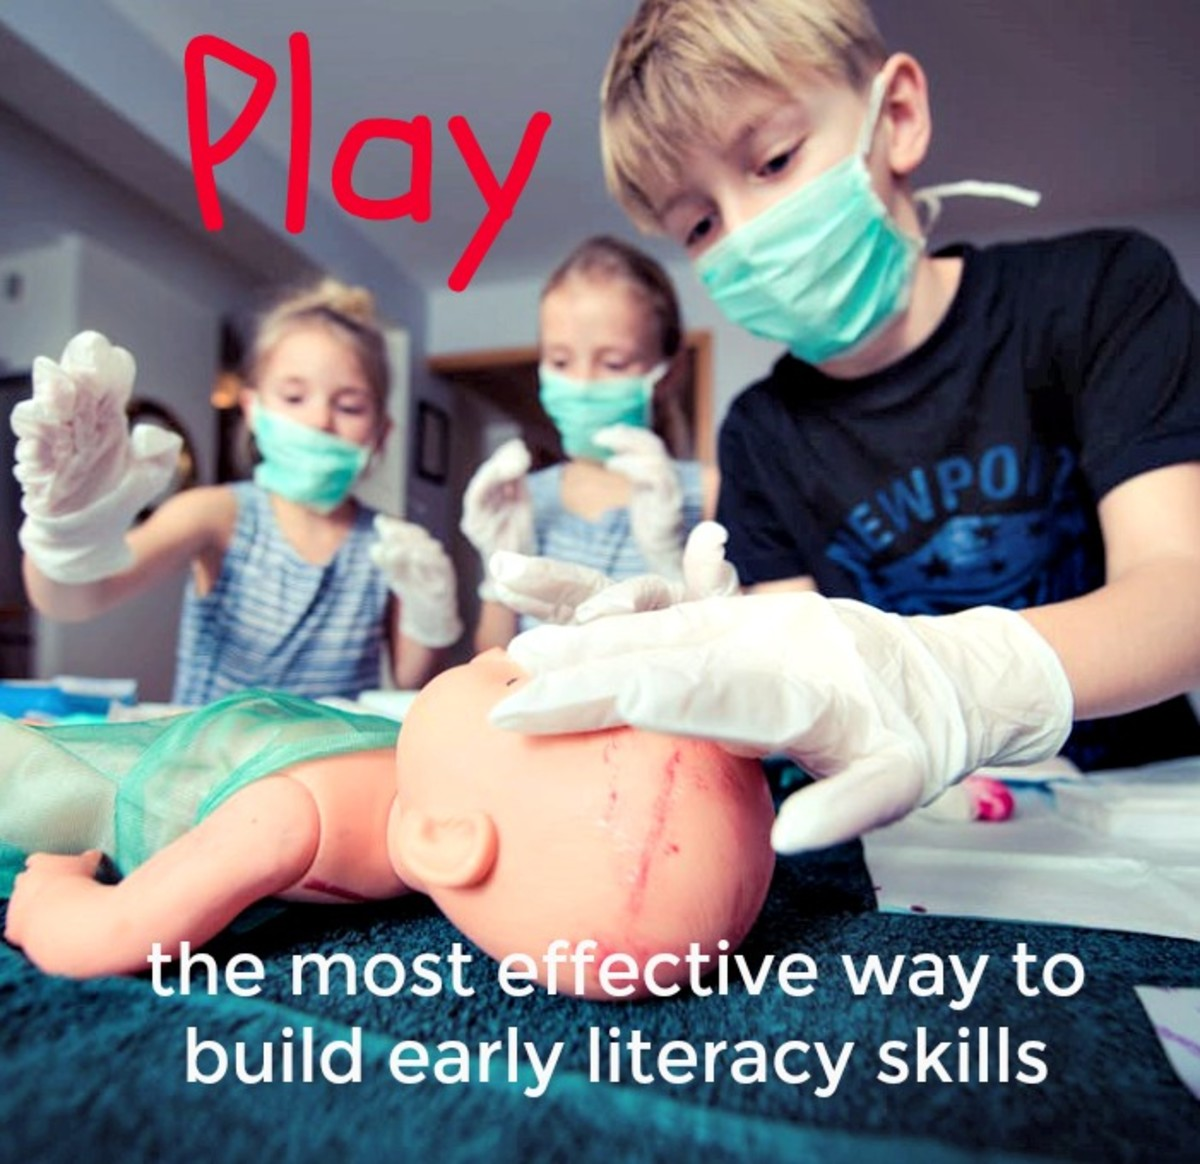 Parents want their kids to have pre-reading skills, but few realize that play is the best way to accomplish that.